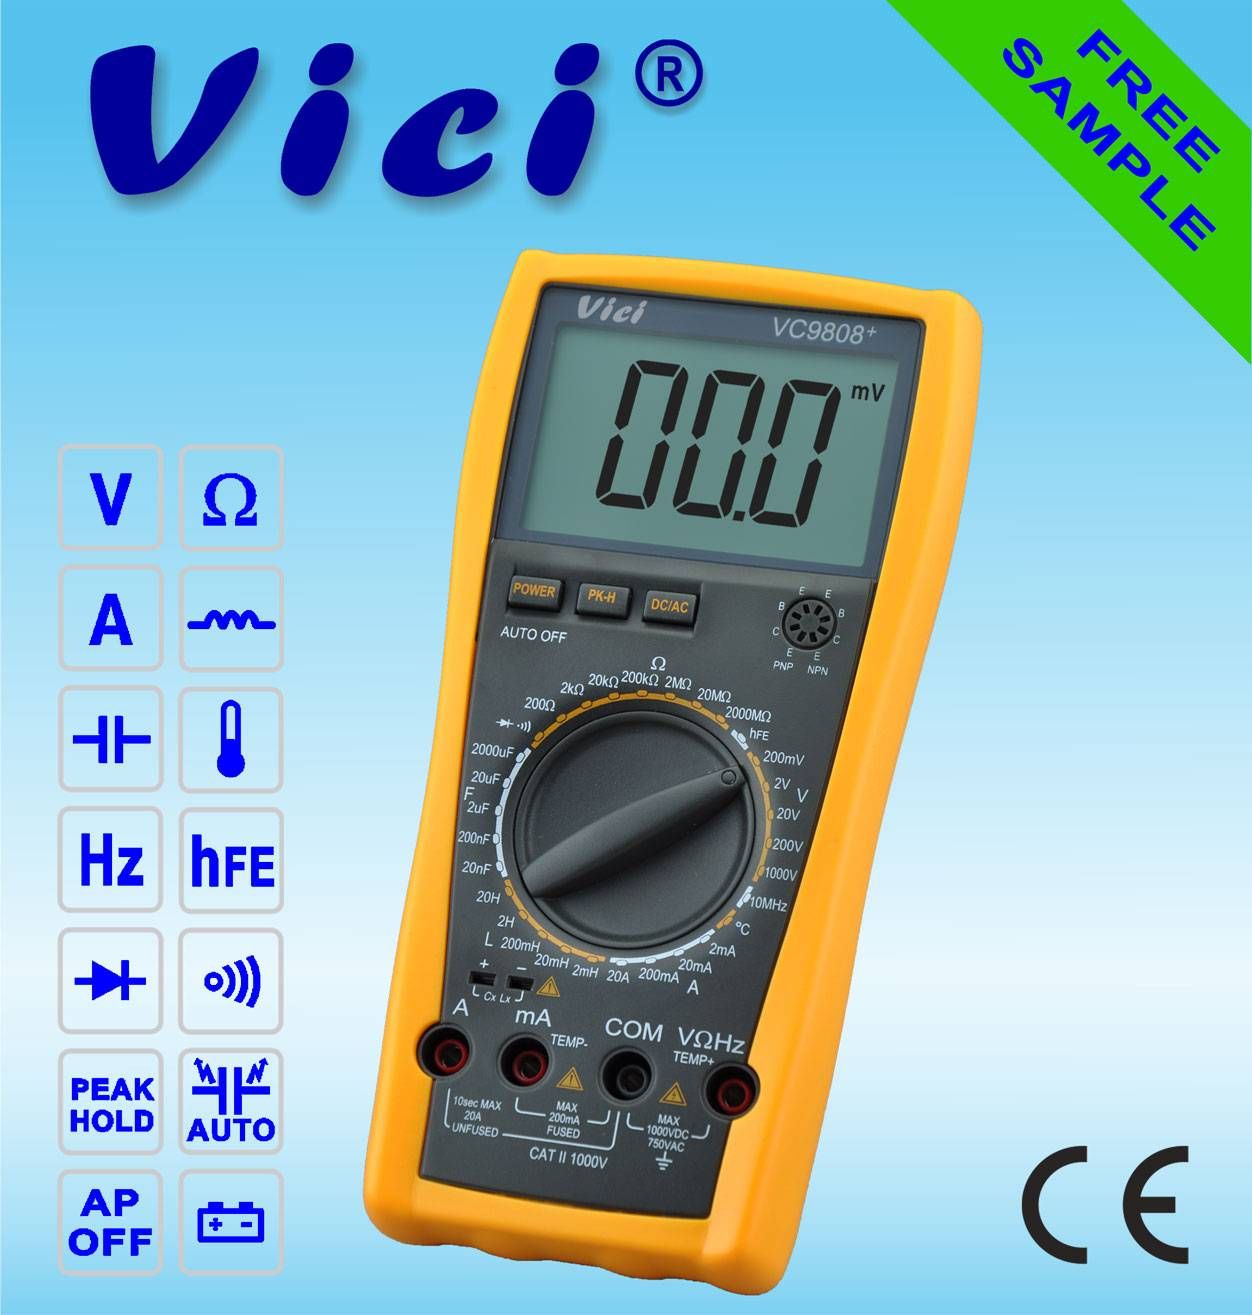 VC9808+  3 1/2  Portable digital multimeter